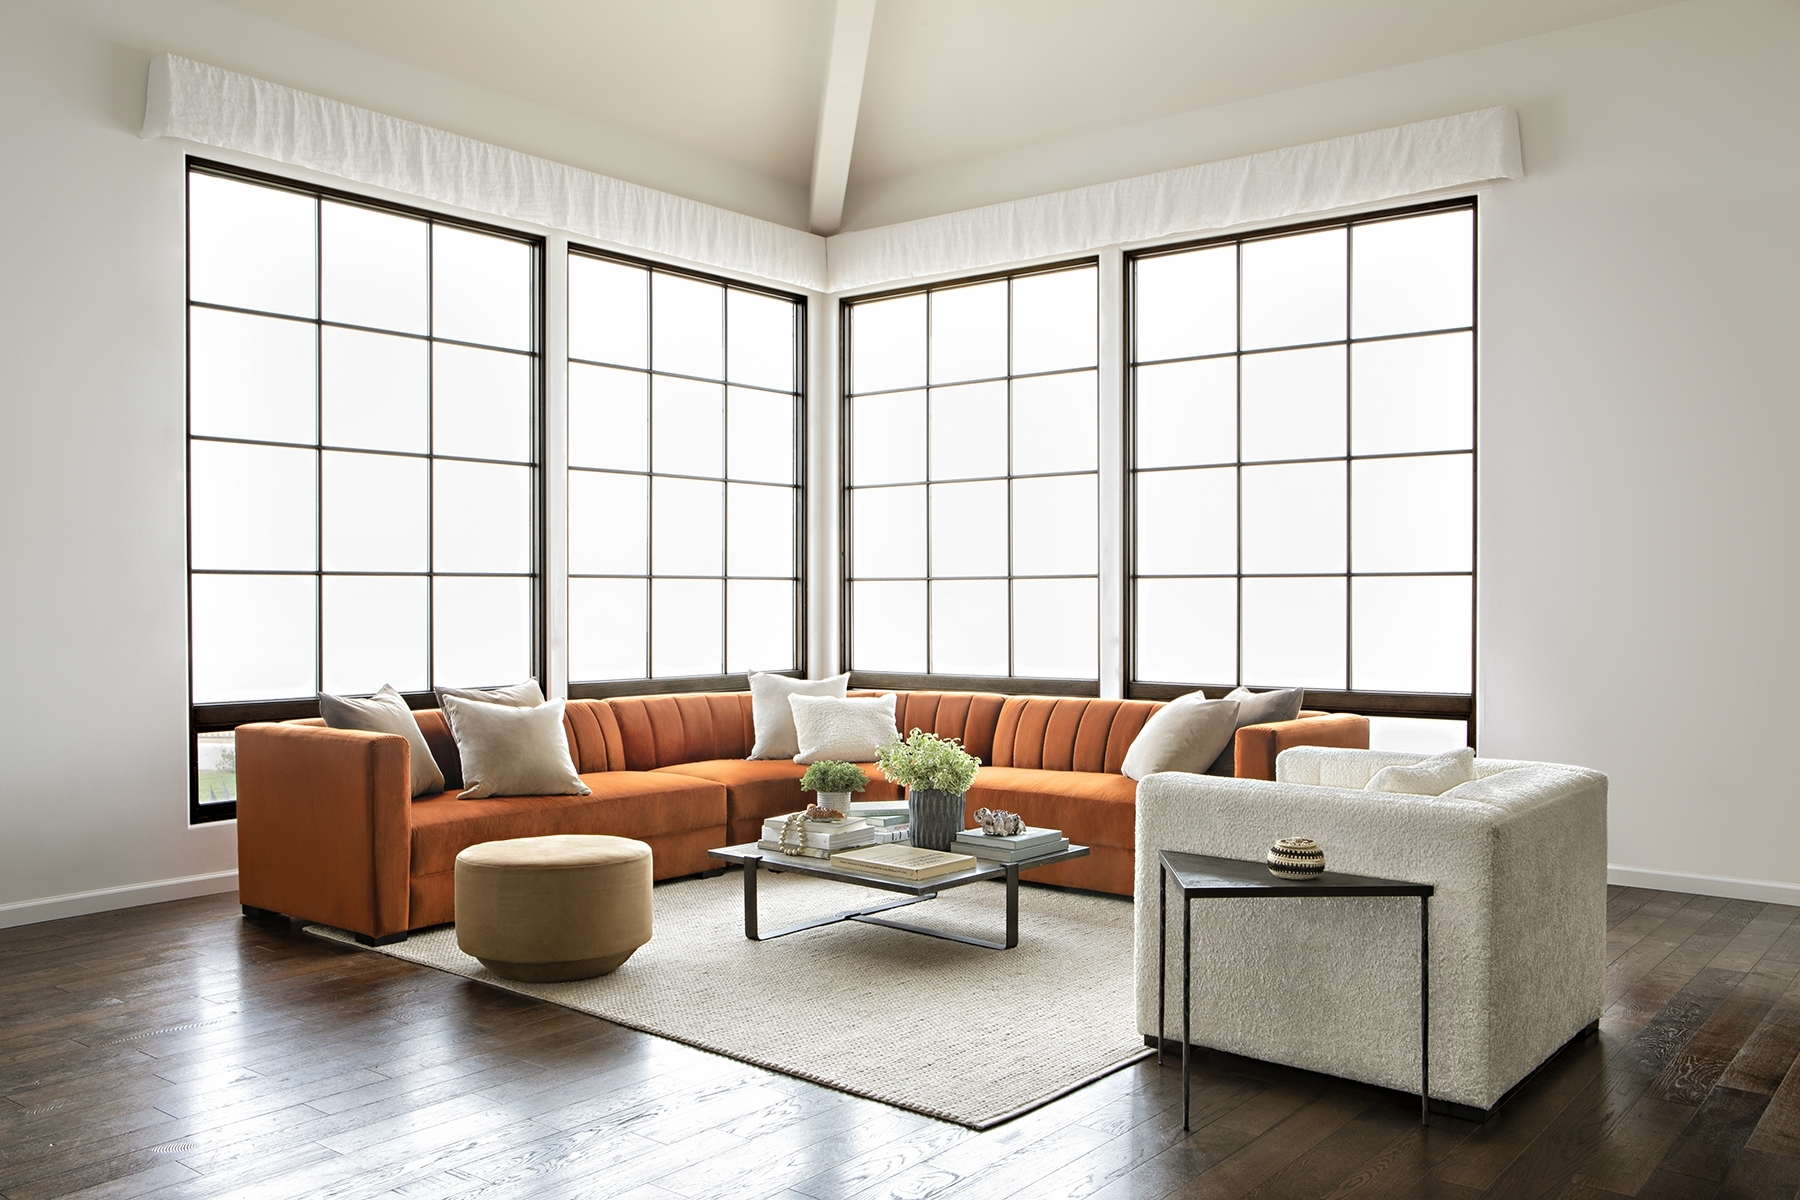 Nate Berkus & Jeremiah Brent's Newest Affordable Collection | Rue Intended For Soane 3 Piece Sectionals By Nate Berkus And Jeremiah Brent (Photo 15 of 30)